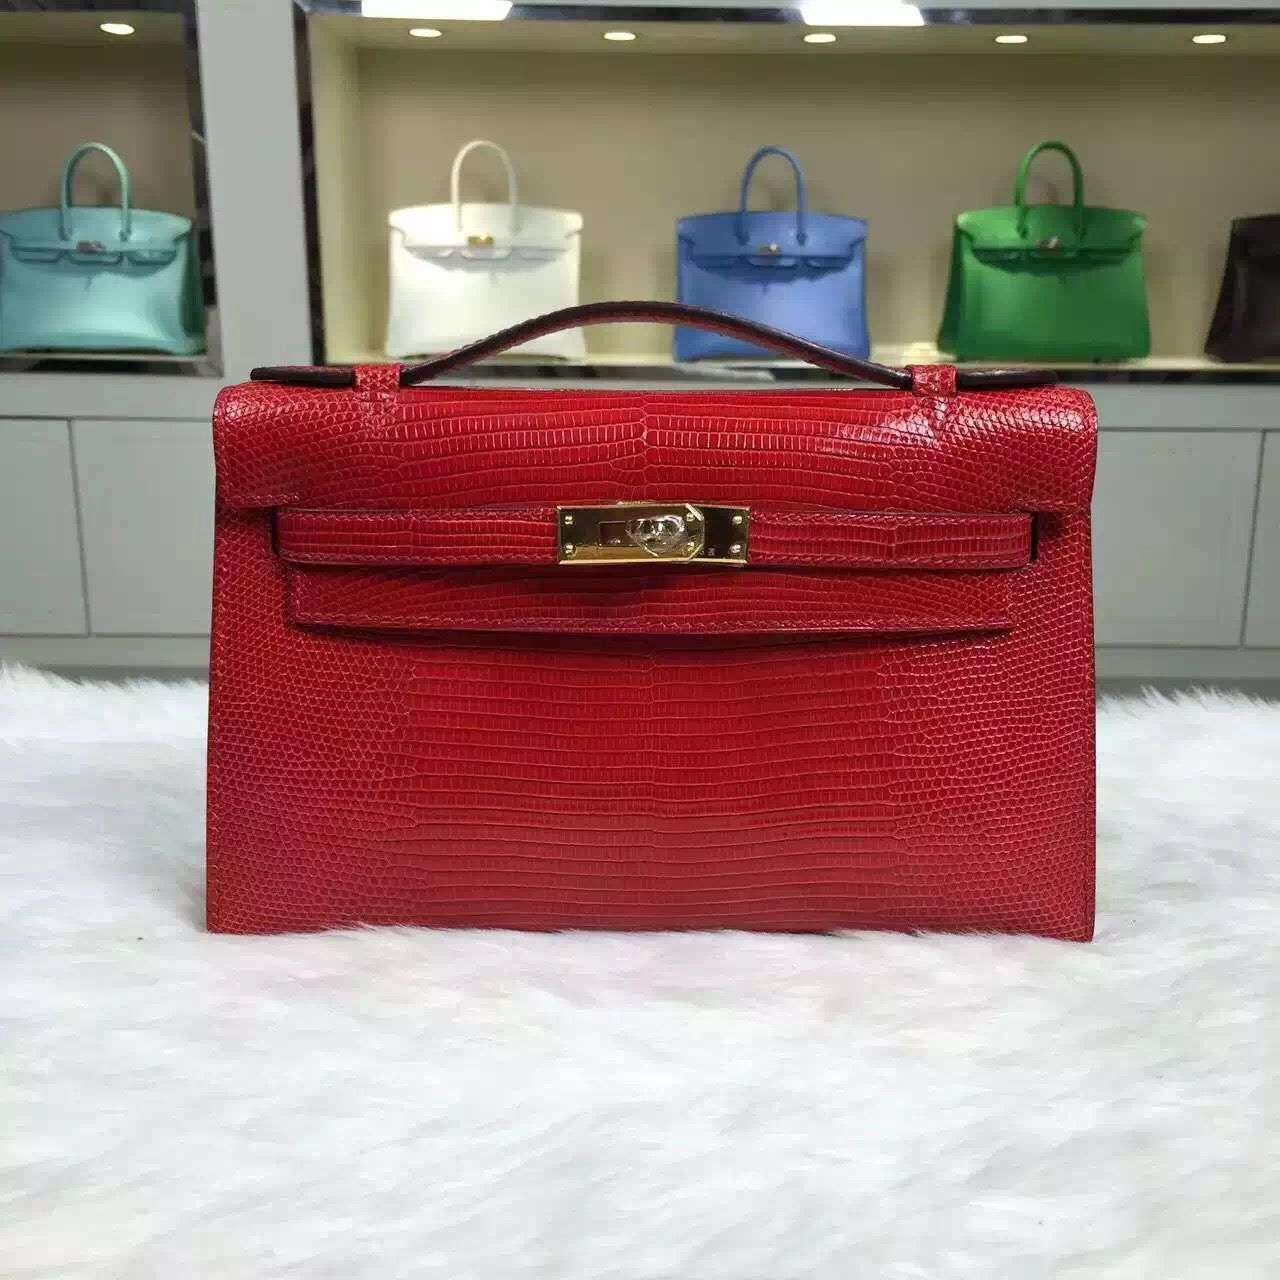 8b743eace4 Brand  Hermes  Style  Mini Kelly Pochette  Material  lizard skin leather Color   Chinese red  Size 22CM  Hardware  gold silver  Accessories  Padlock and  keys ...